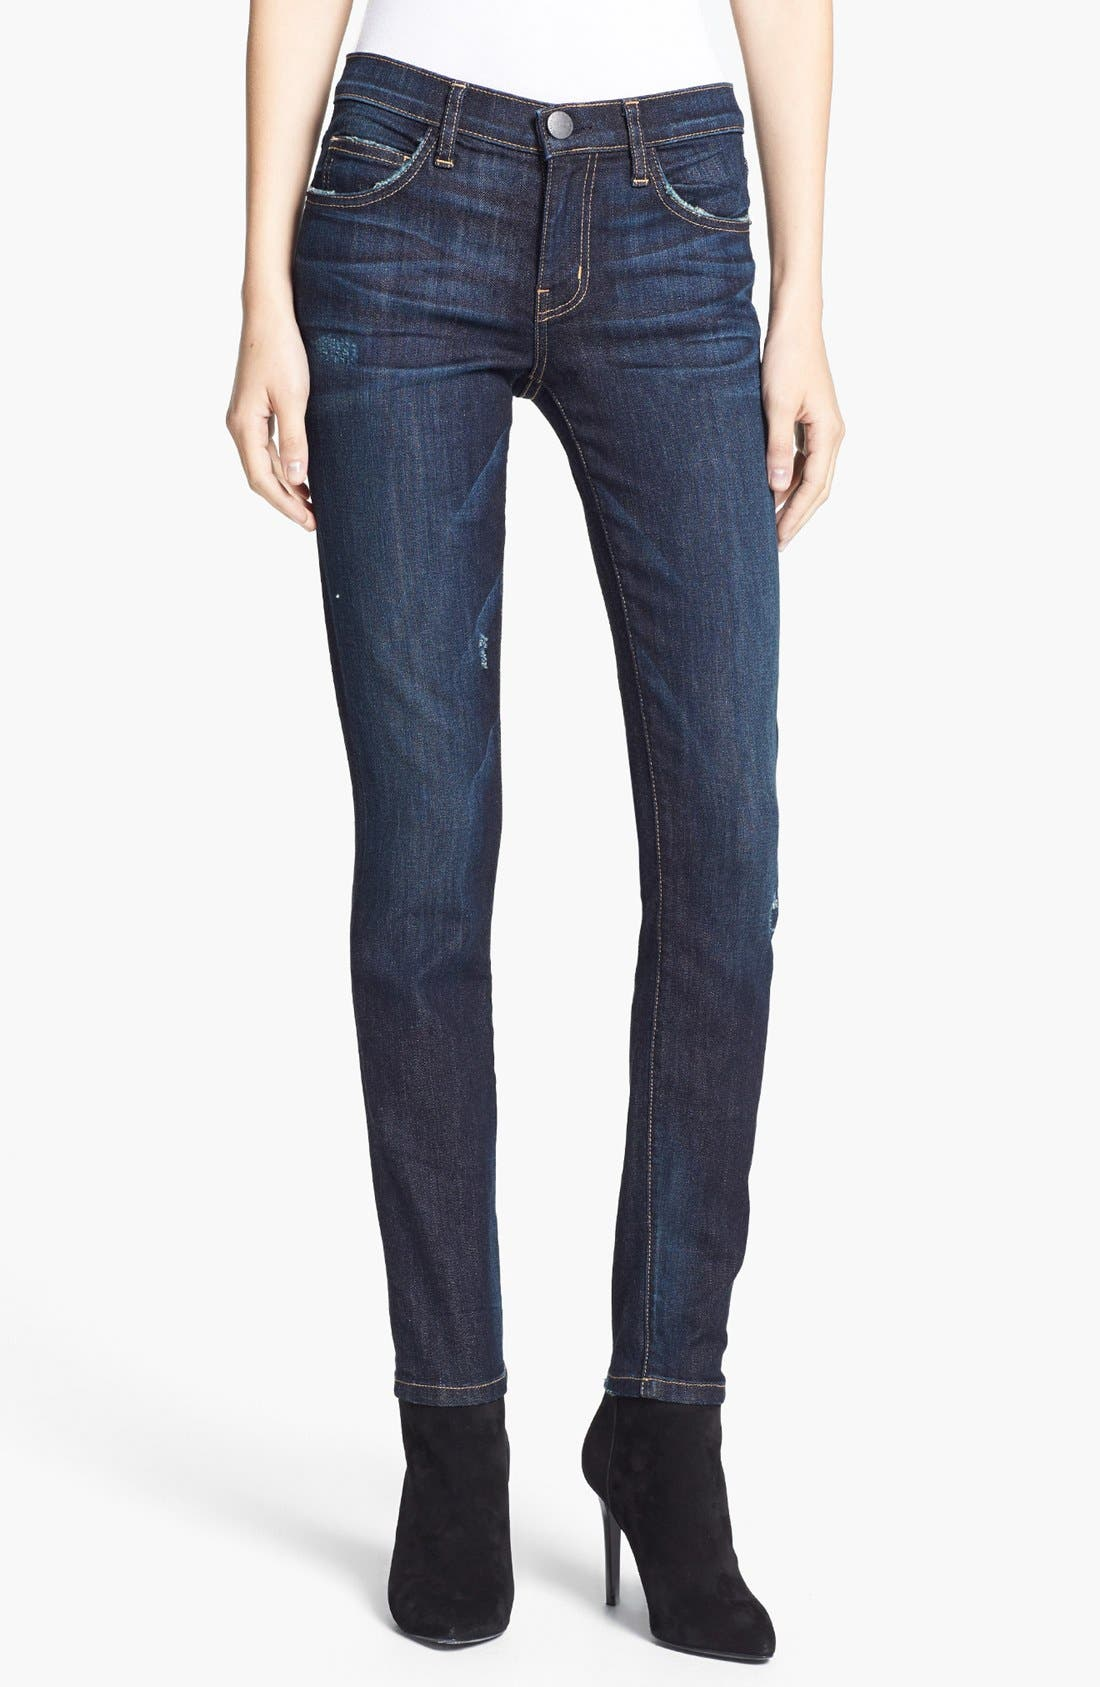 Alternate Image 1 Selected - Current/Elliott 'The Ankle Skinny' Jeans (Richmond)